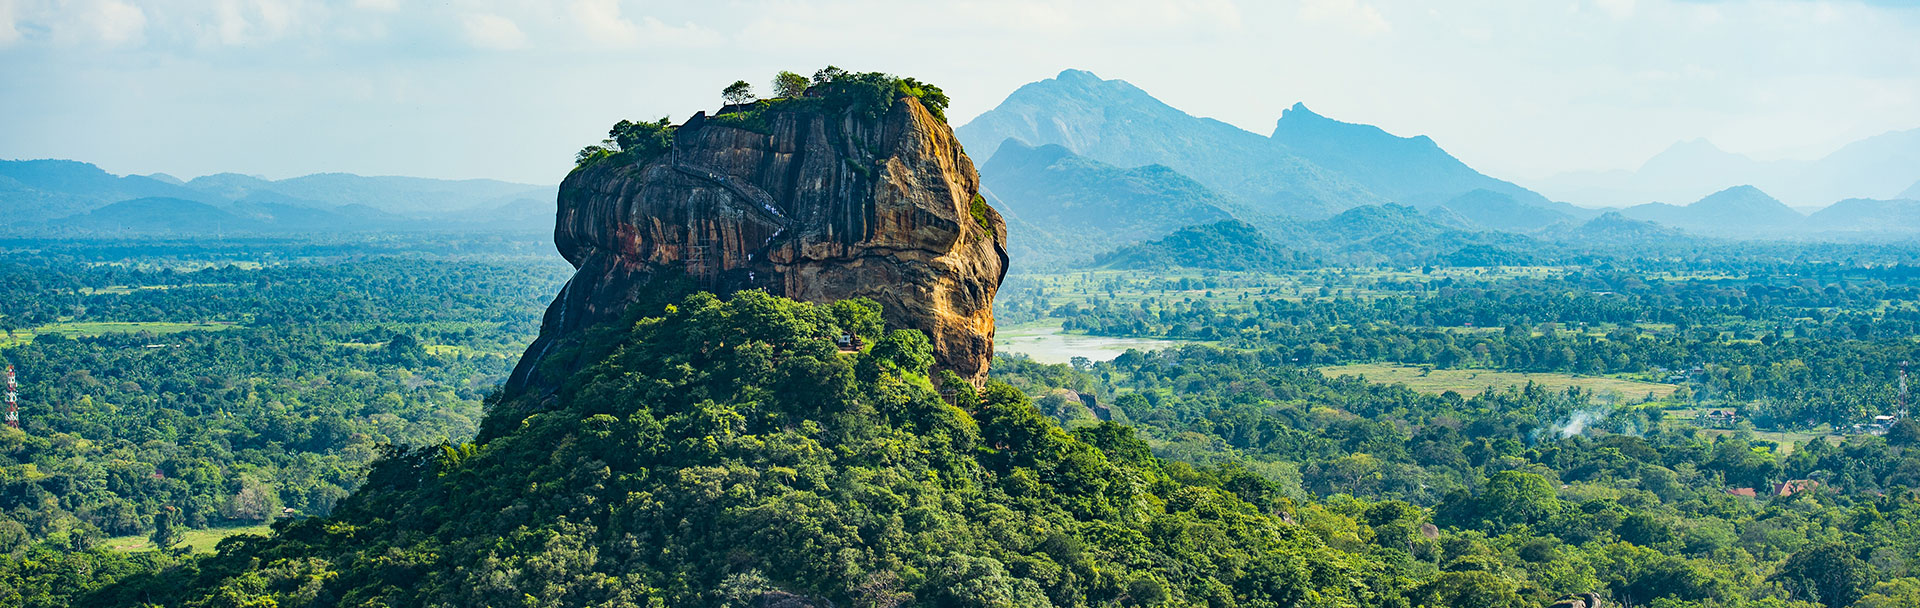 Sri Lanka Tour with All Inclusive Stay